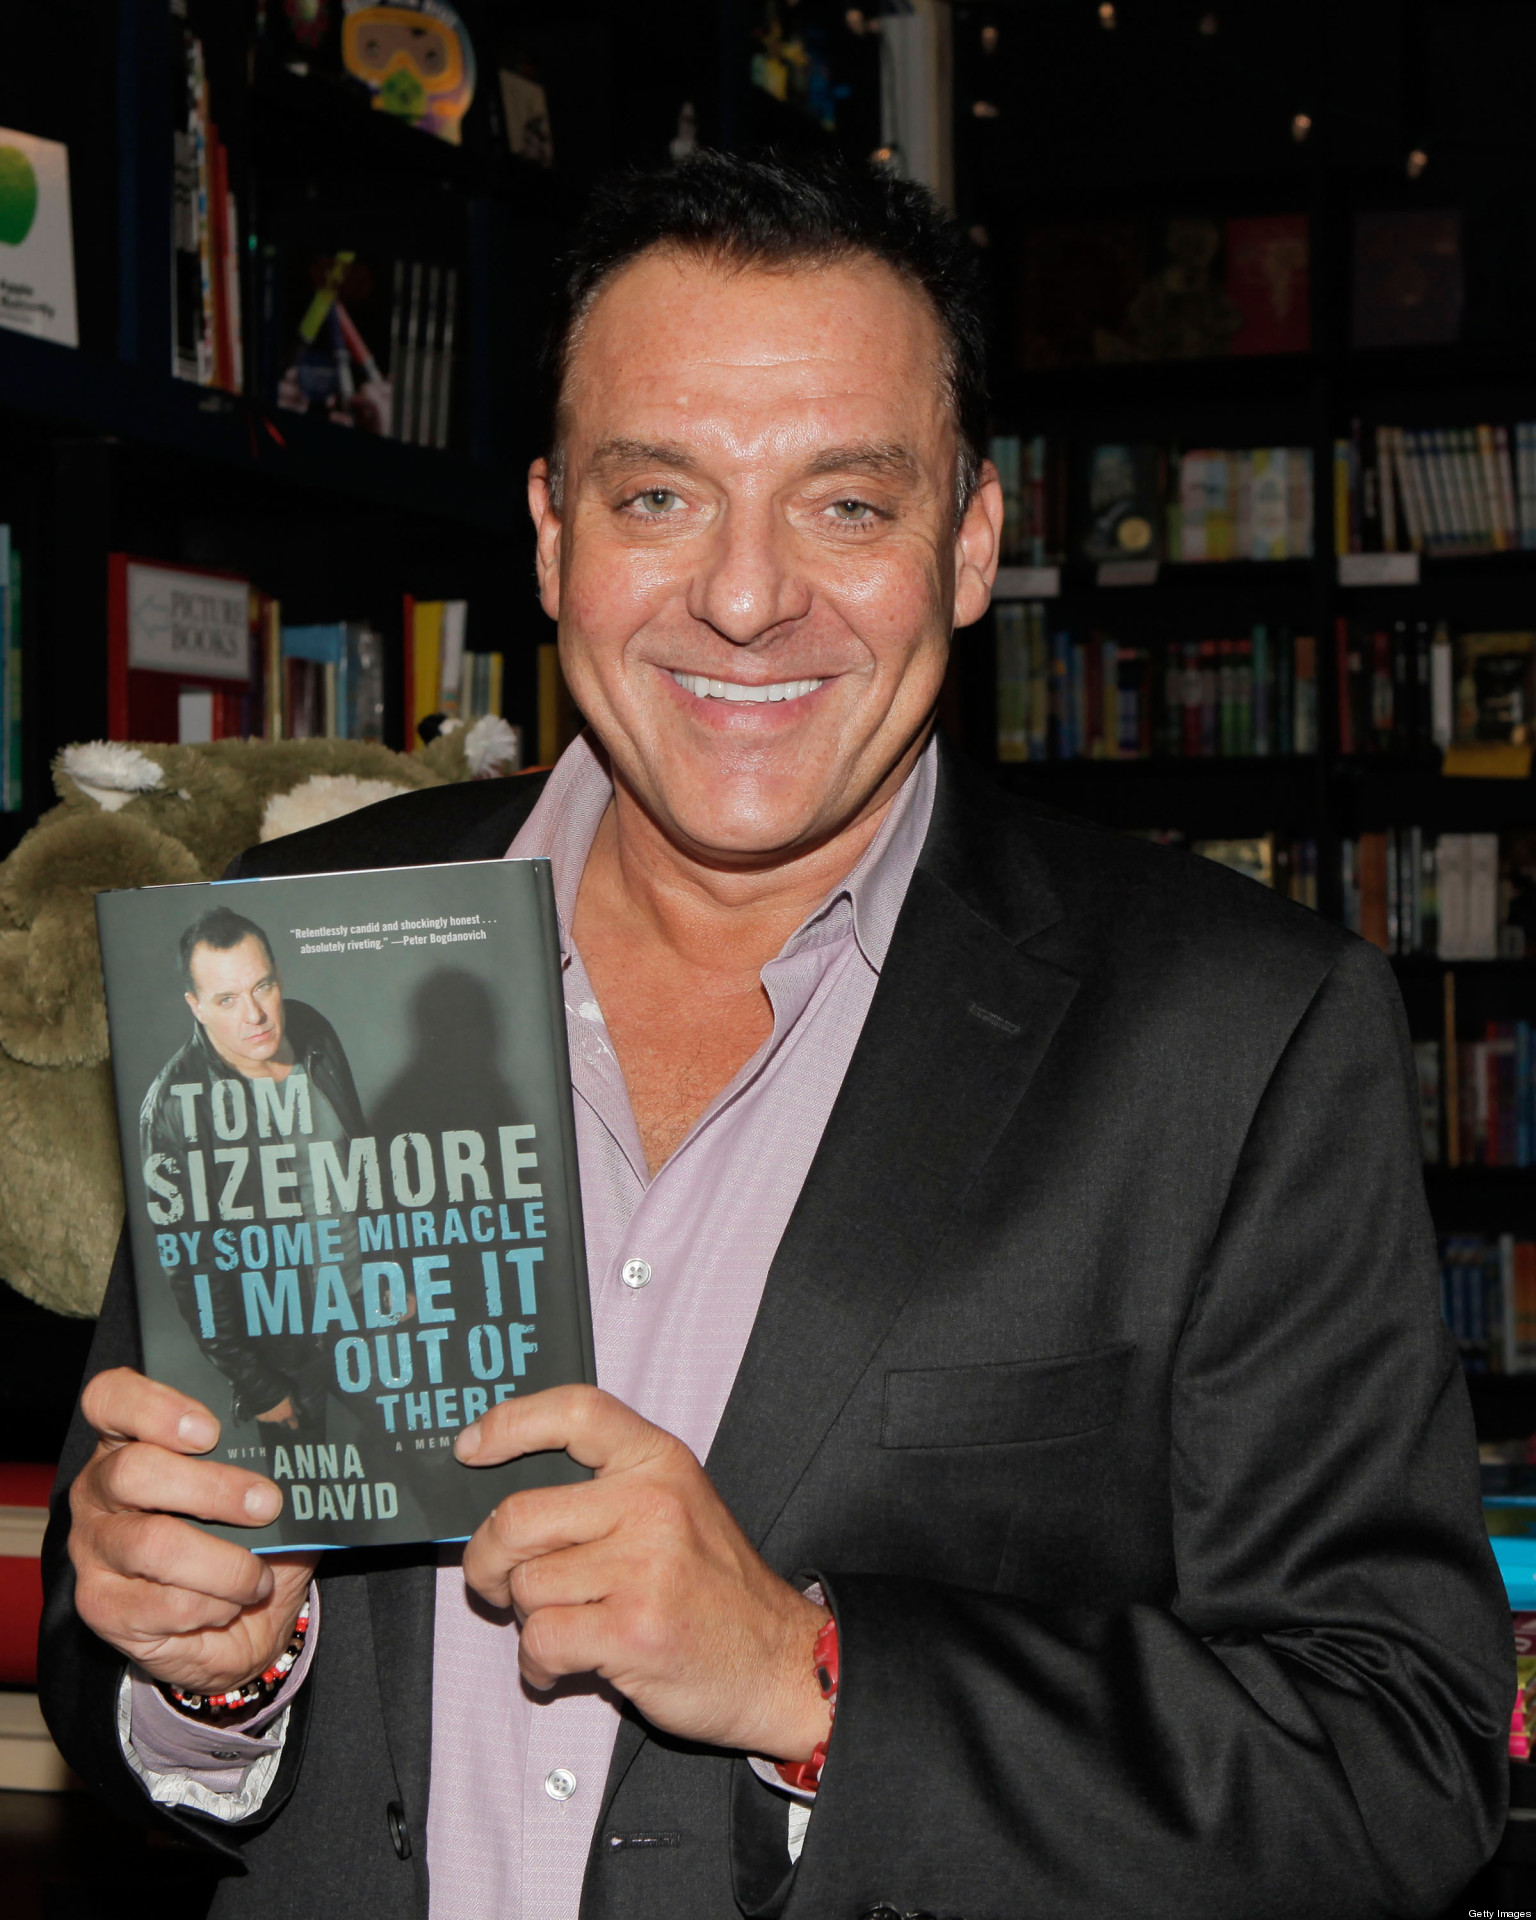 Tom Sizemore's Battle With Drugs Detailed In New Memoir